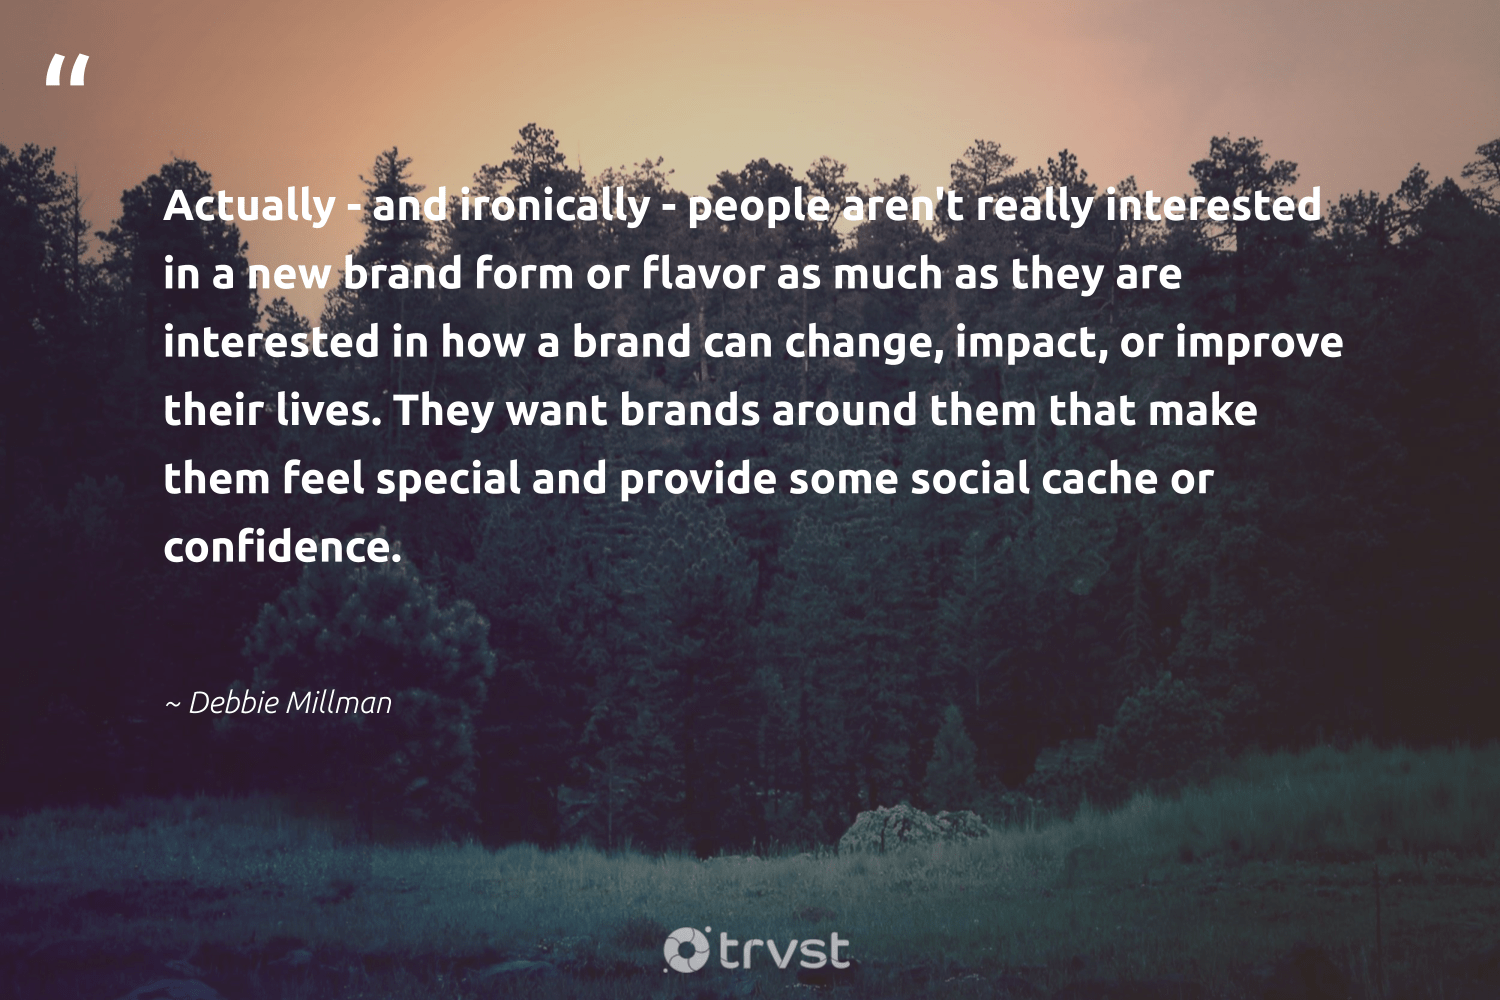 """Actually - and ironically - people aren't really interested in a new brand form or flavor as much as they are interested in how a brand can change, impact, or improve their lives. They want brands around them that make them feel special and provide some social cache or confidence.""  - Debbie Millman #trvst #quotes #impact #makeadifference #dosomething #socialchange #thinkgreen #giveback #changetheworld #dogood #ecoconscious #weareallone"